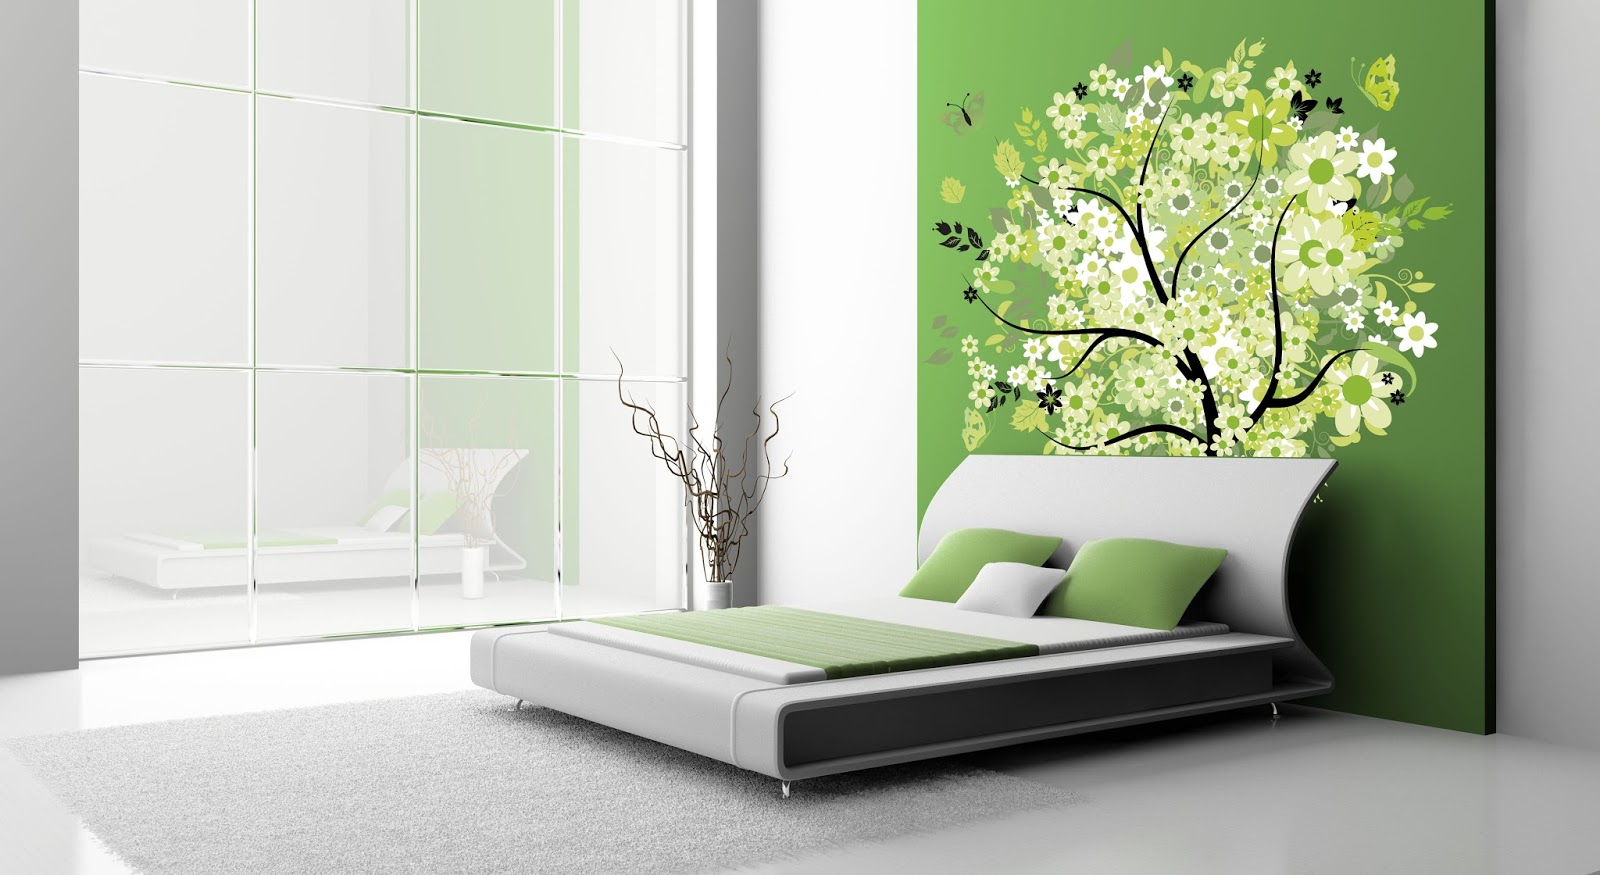 Bedroom wall decorations modern - Bedroom Wall Hangings Decorations